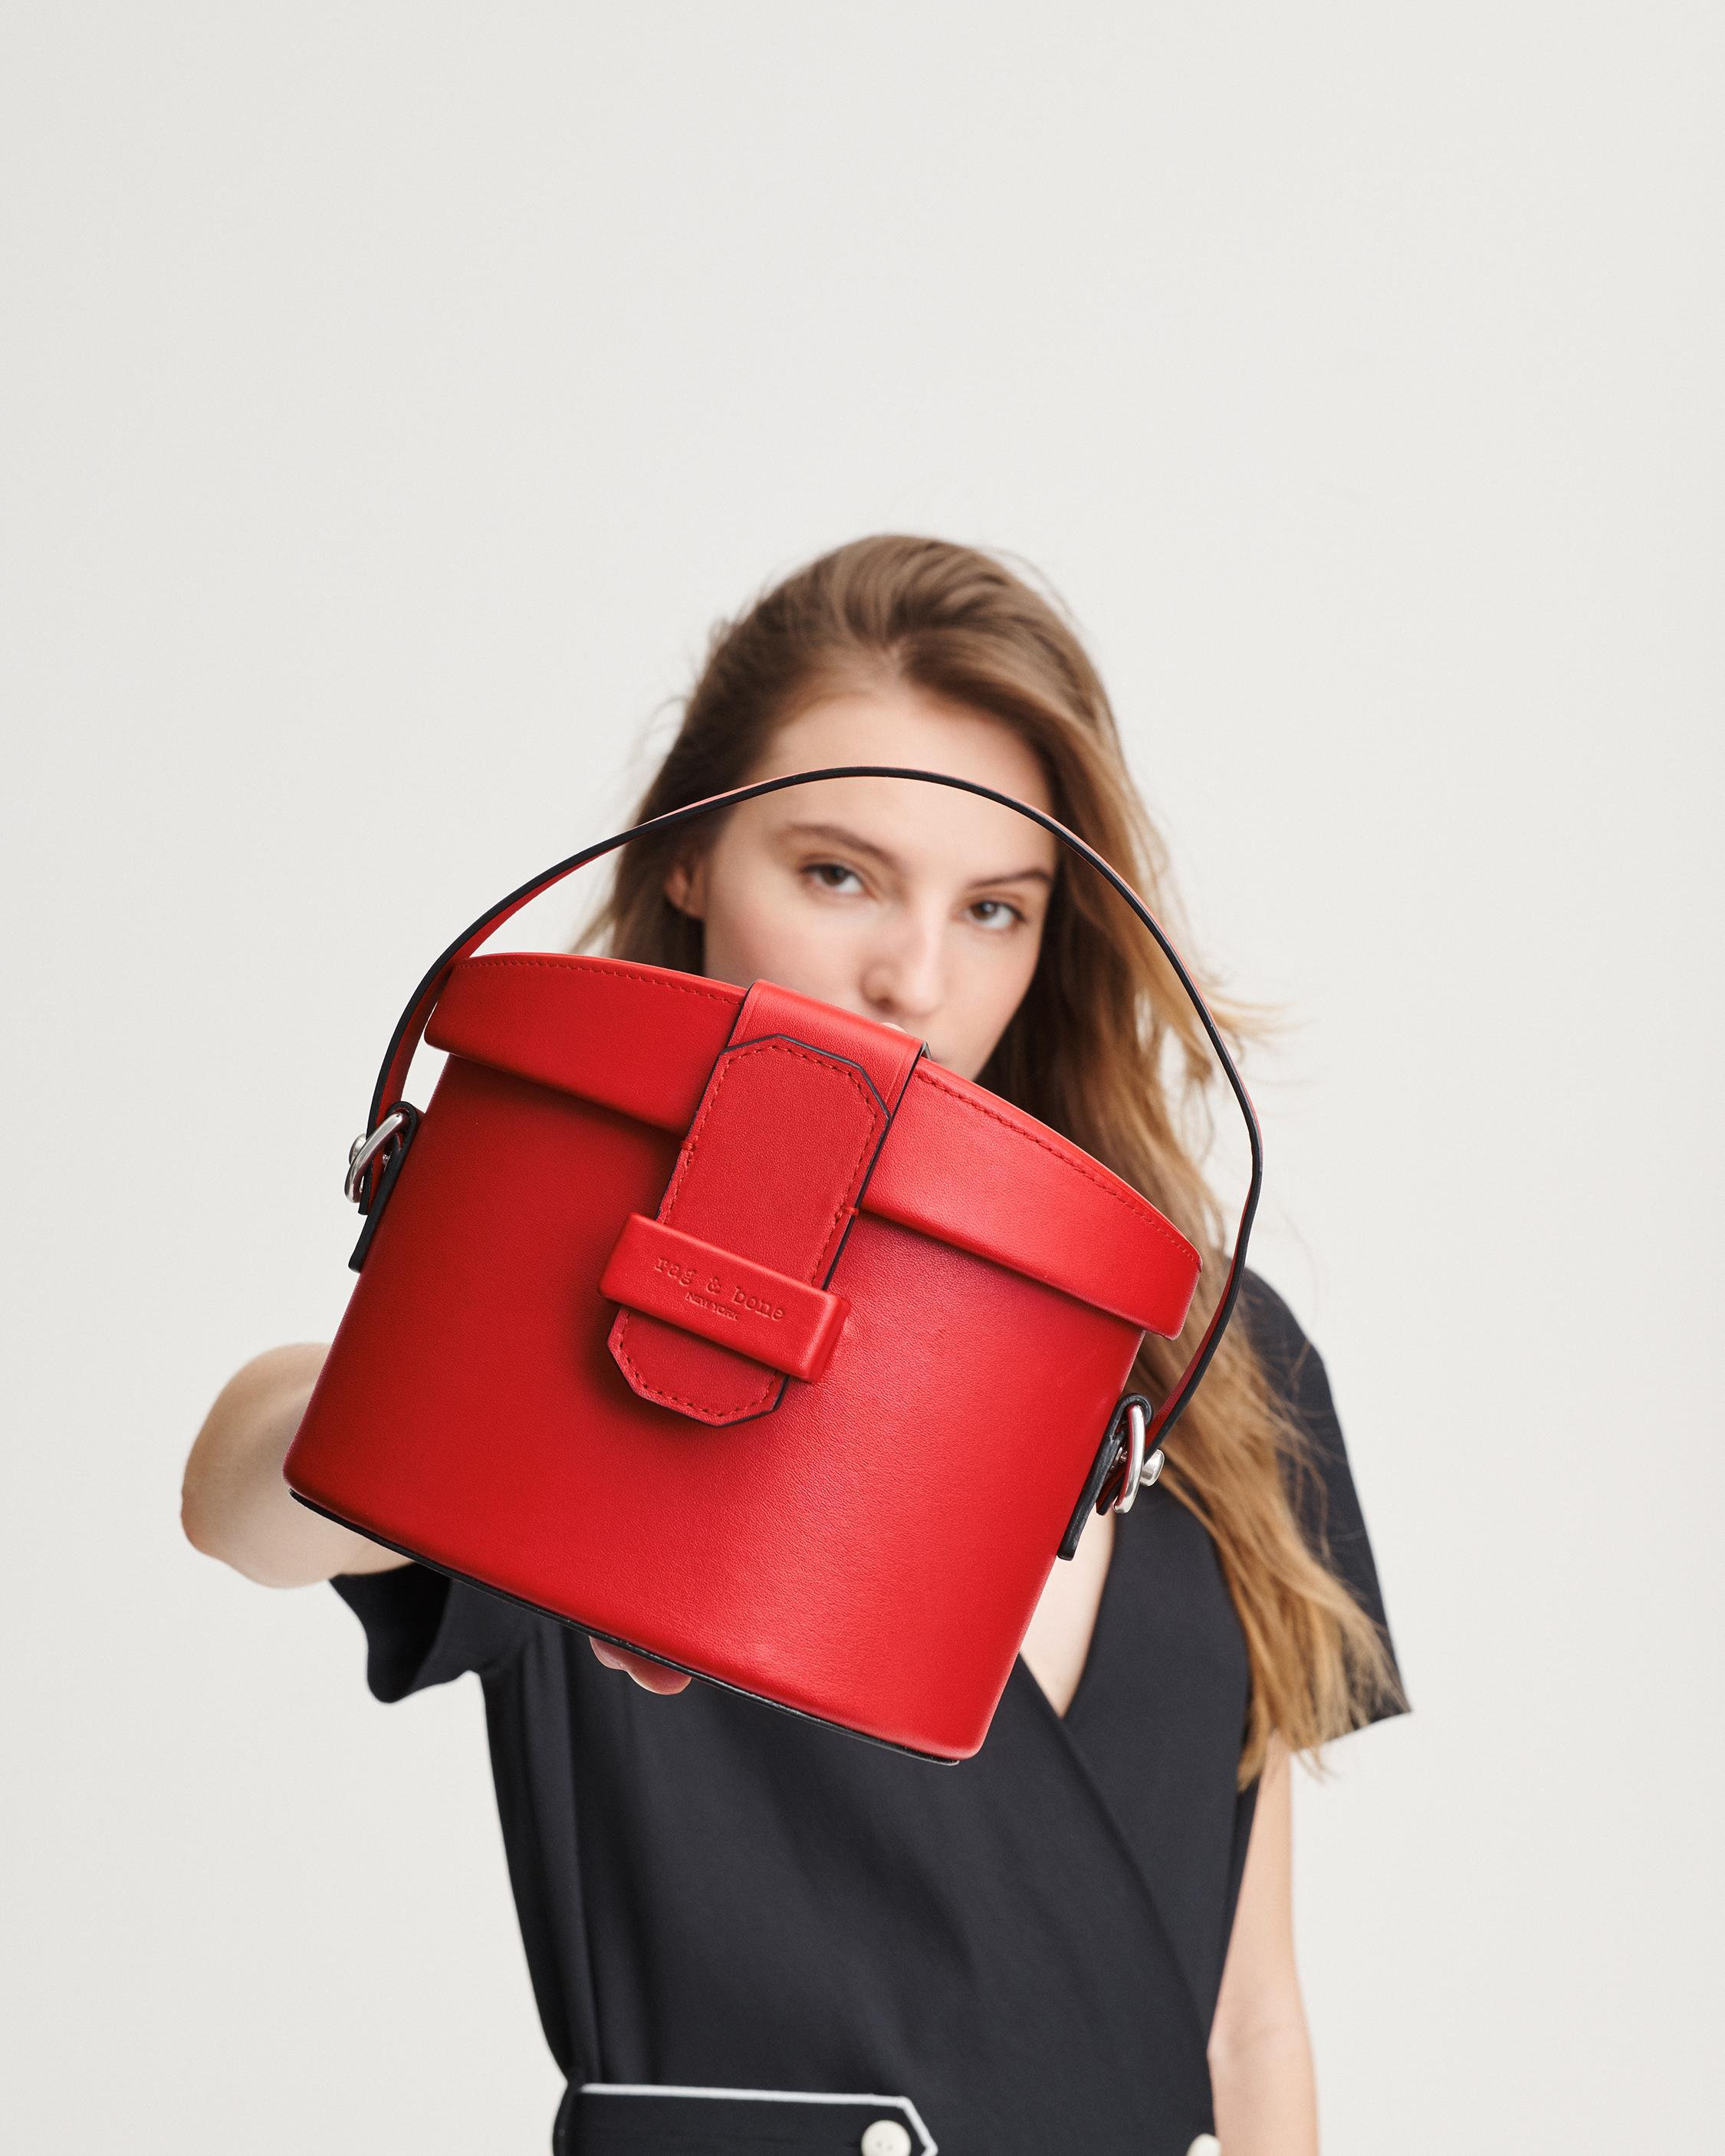 Rag & Bone Barrow Binocular Bag in red from the Fall 2019 Collection